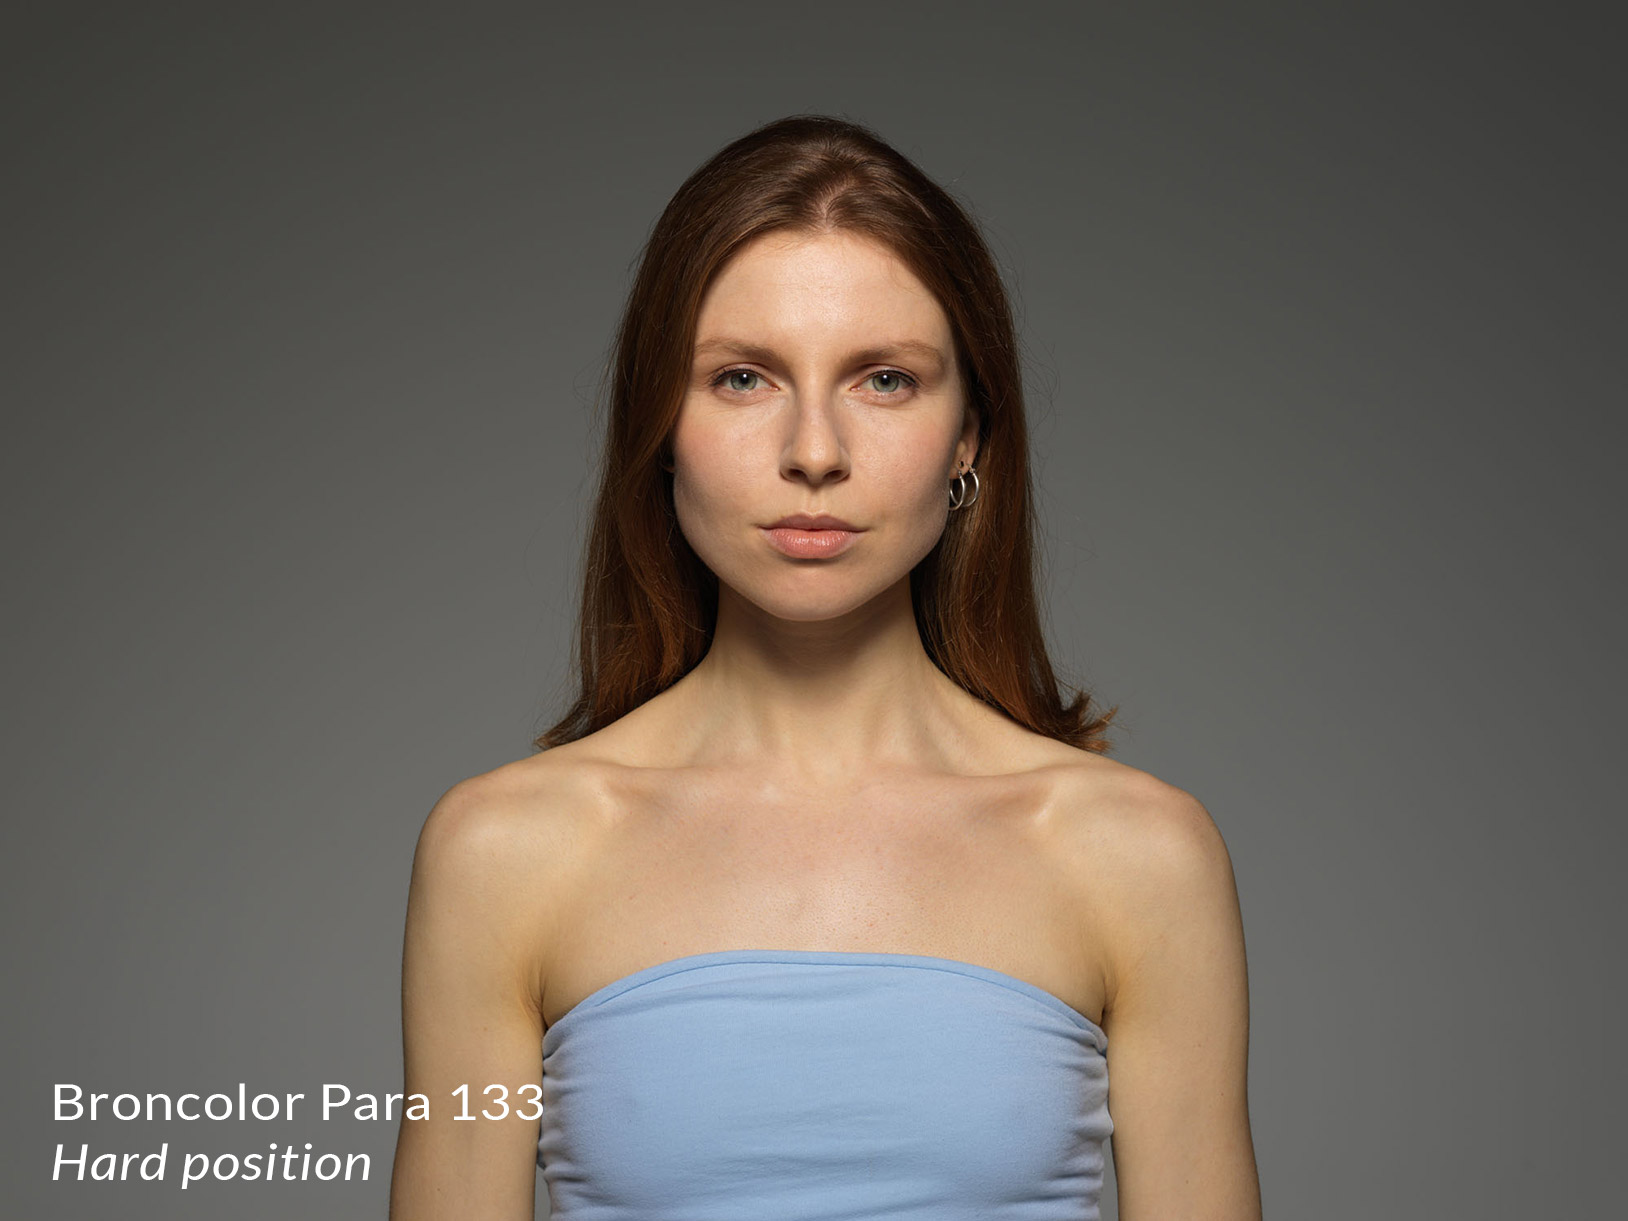 Lighting from broncolor para 133 in the hard position